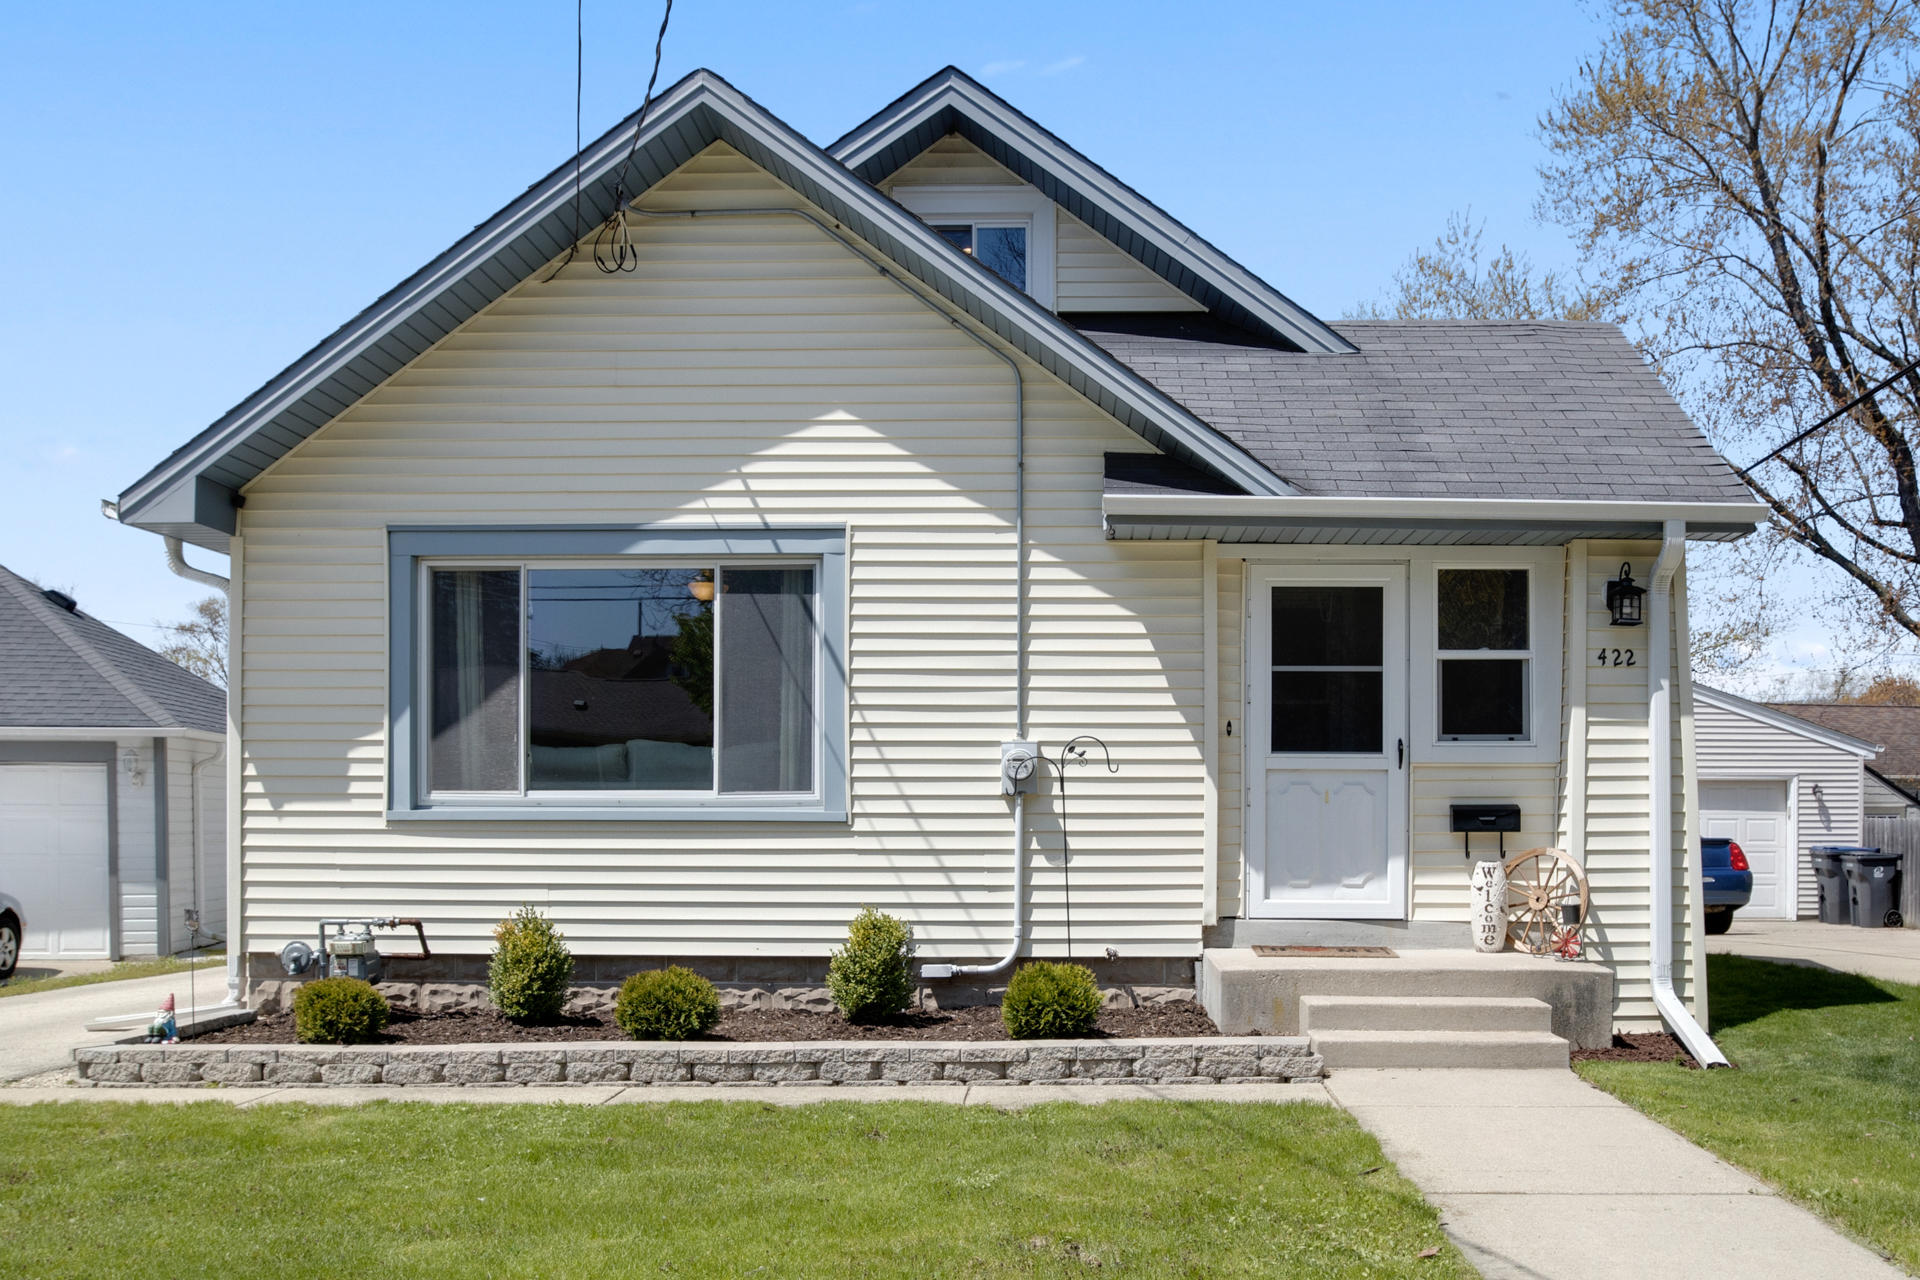 422 Hine Ave, Waukesha, Wisconsin 53188, 3 Bedrooms Bedrooms, 6 Rooms Rooms,1 BathroomBathrooms,Single-Family,For Sale,Hine Ave,1688857